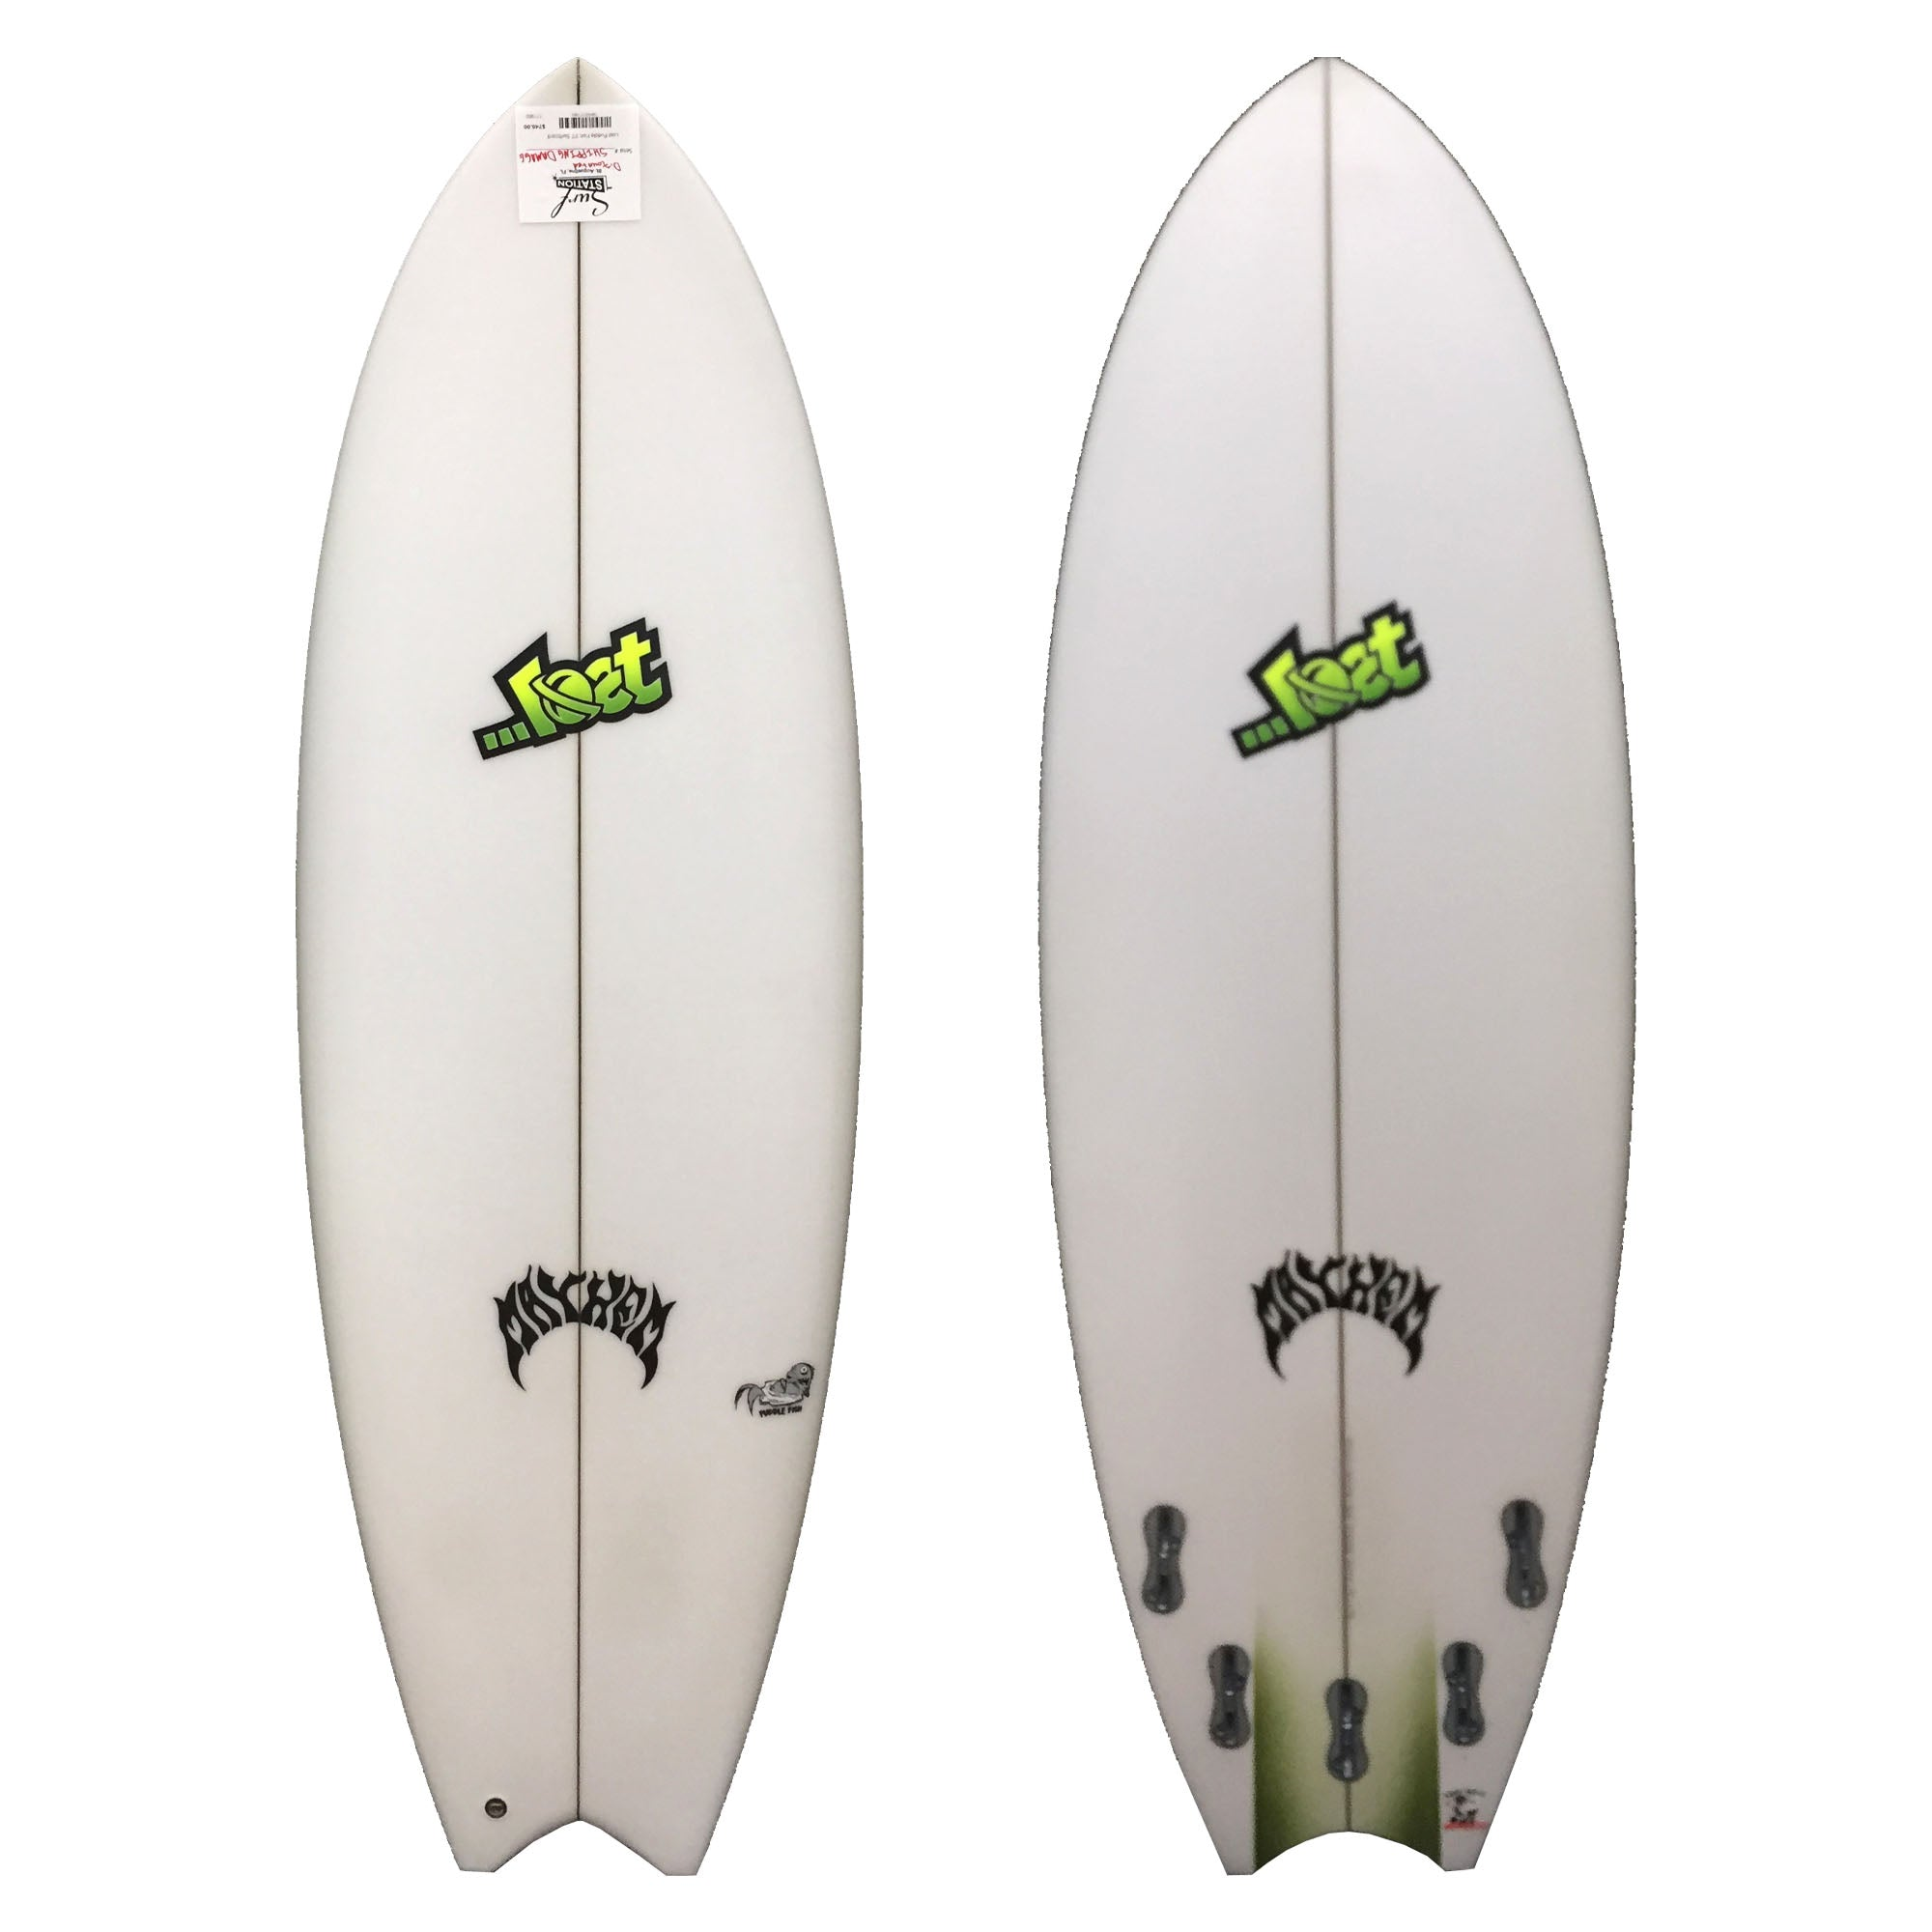 Lost Puddle Fish Discount Surfboard